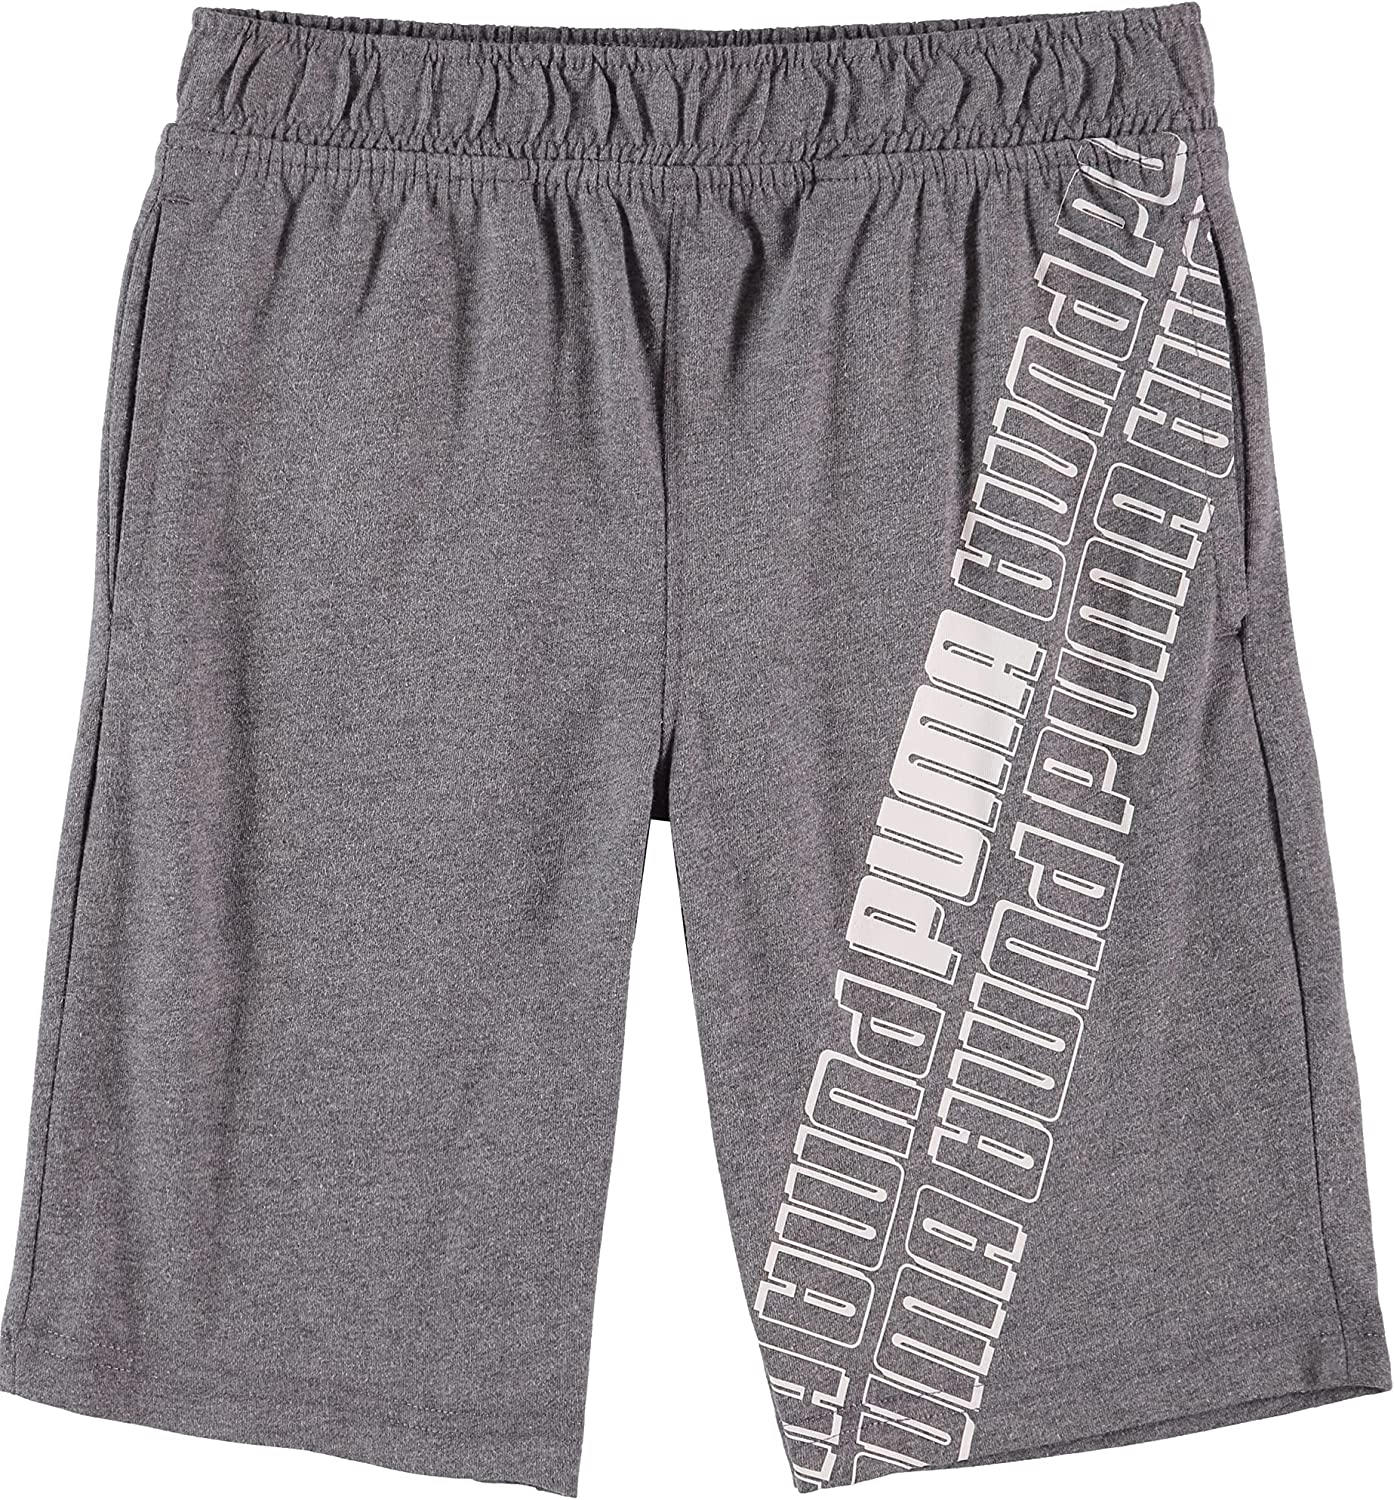 PUMA All items in the store Boys' Amplified Essential online shop Logo Athletic Shorts